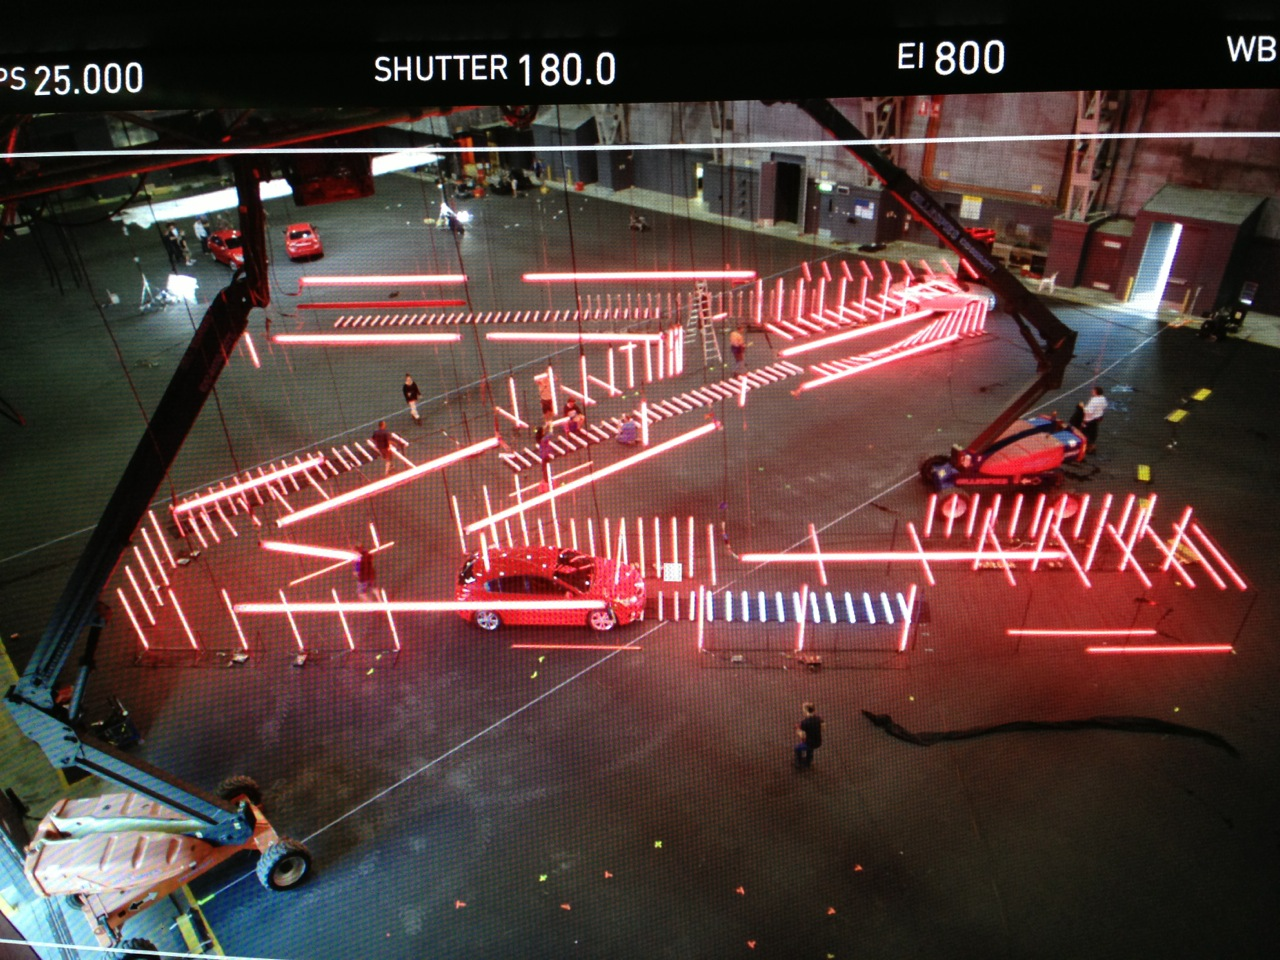 Camera tape on studio floor indicates set out positions of lighting hanging from ceiling grid in extreme foreground